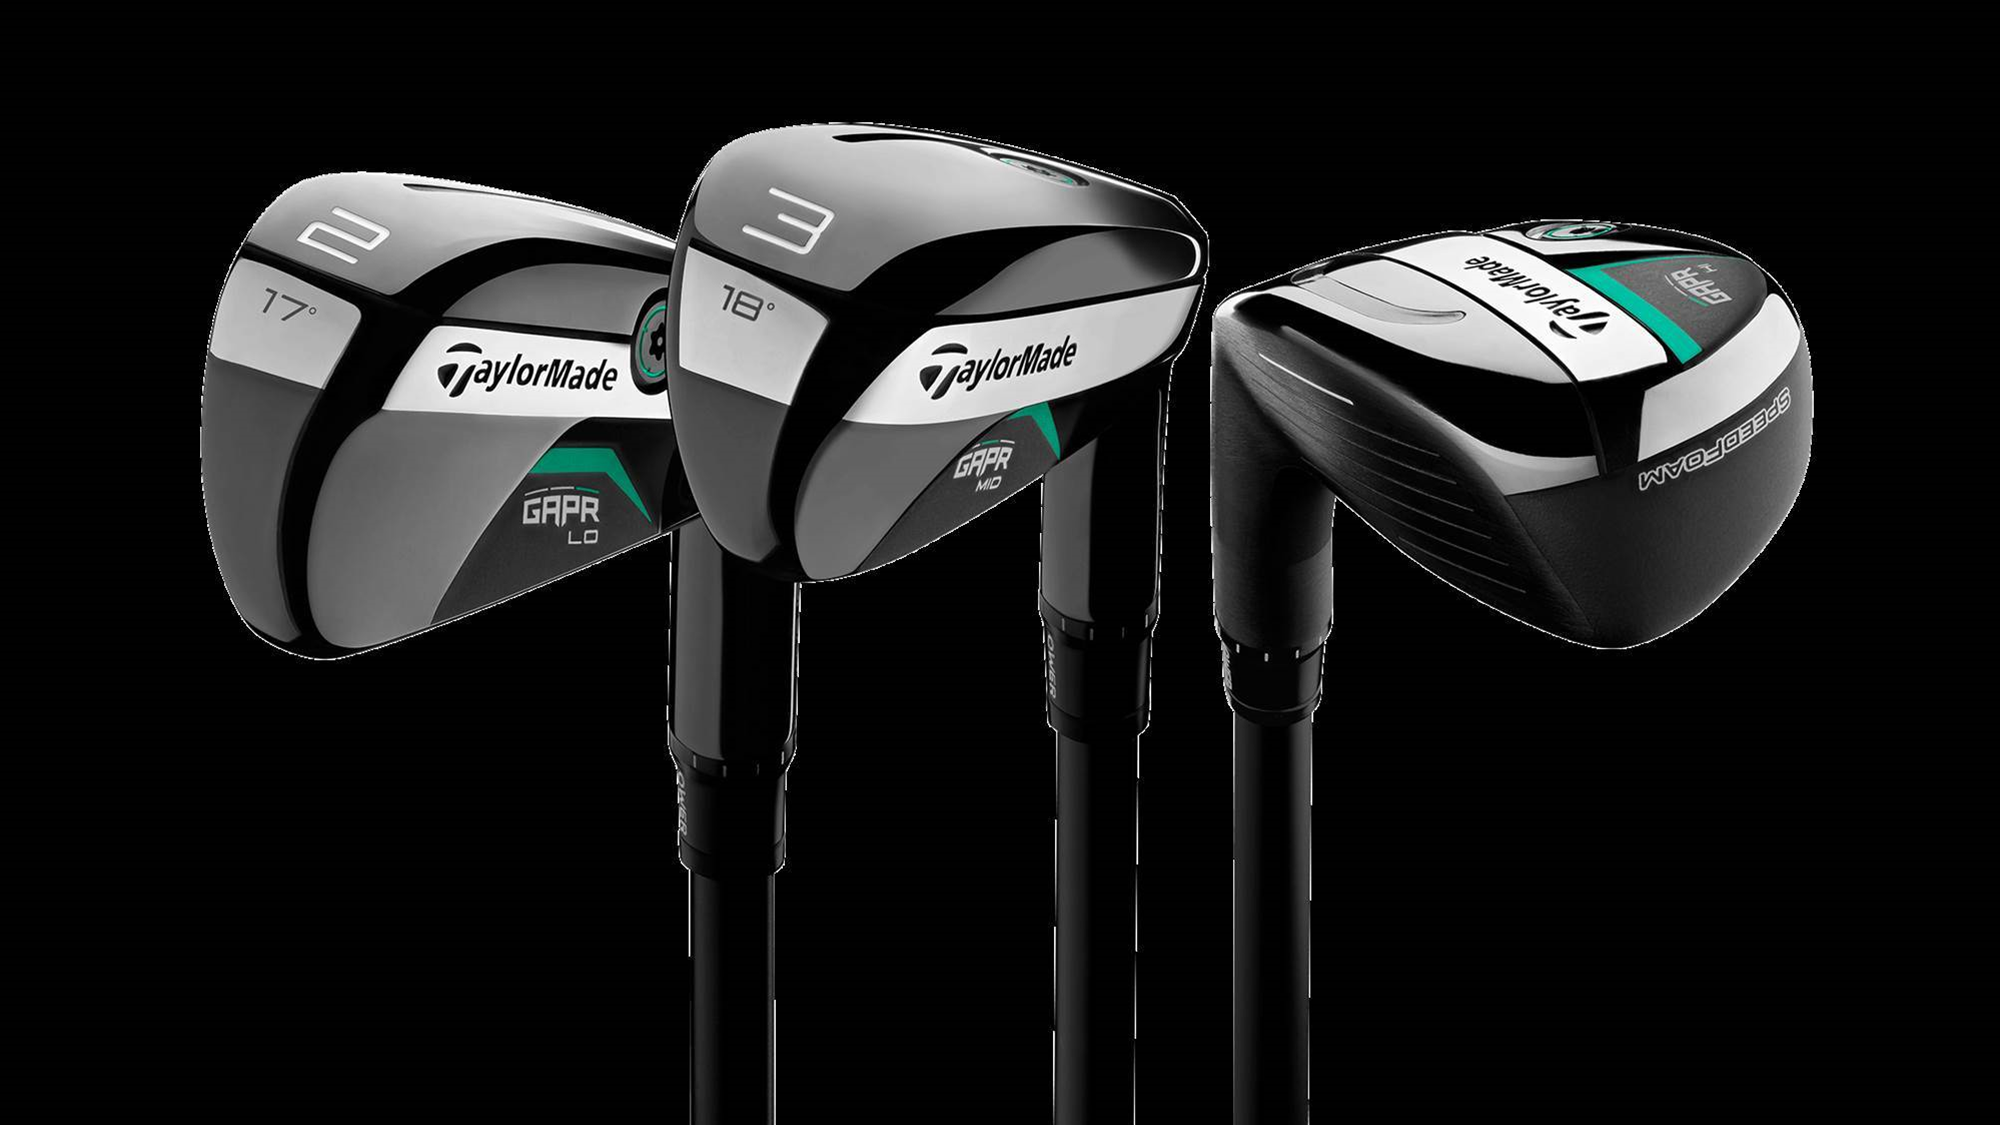 TaylorMade's GAPR to fill setup gaps